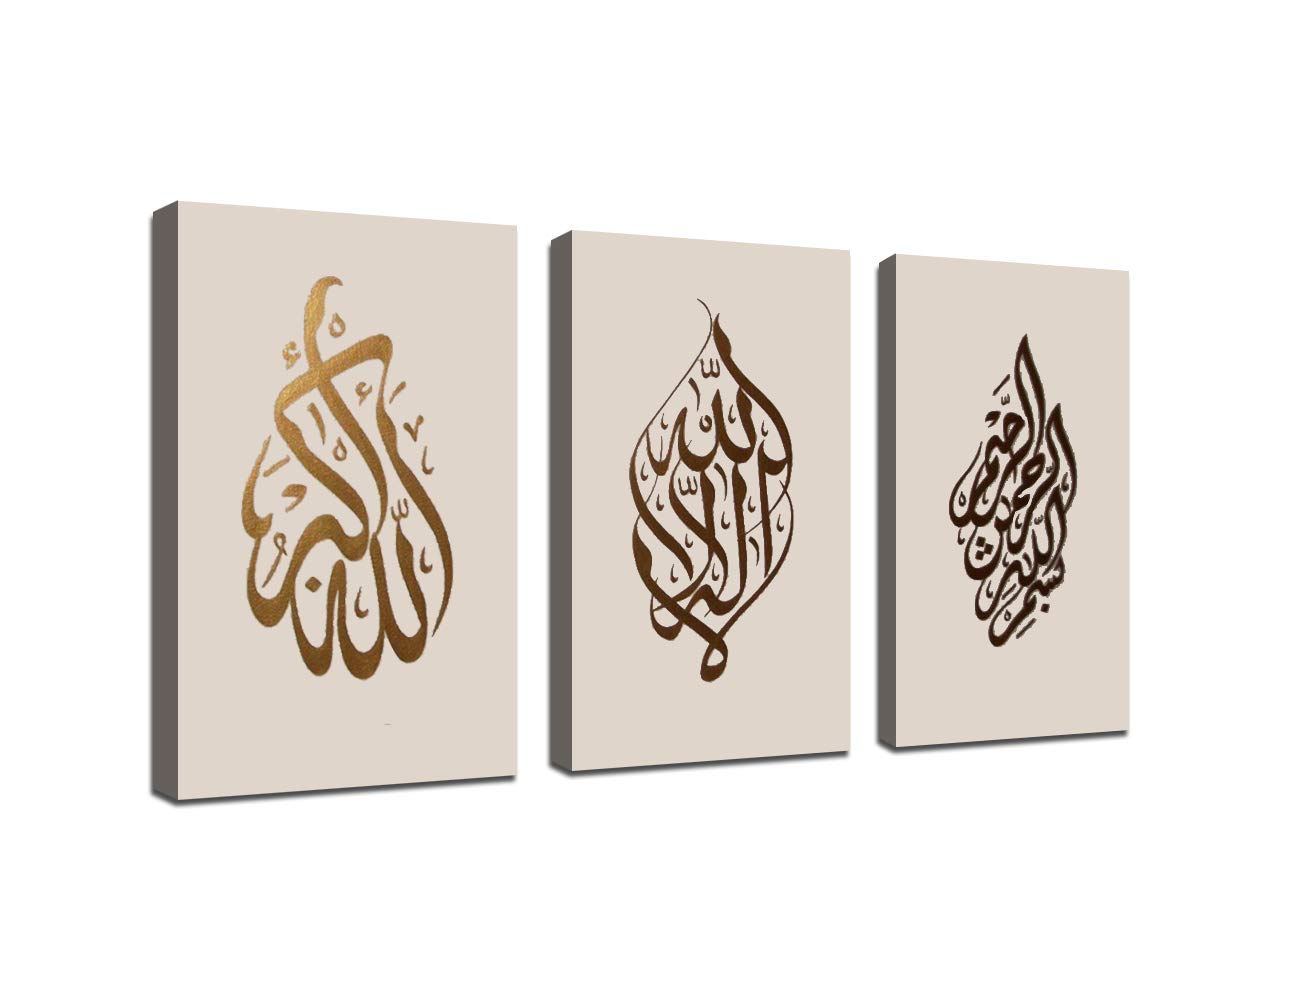 Yatsen Bridge Arabic Calligraphy Islamic Handmade Pictures Wall Art Oil Paintings on Canvas 3pcs for Living Room Home Decorations Wooden Framed (Beige Gold)